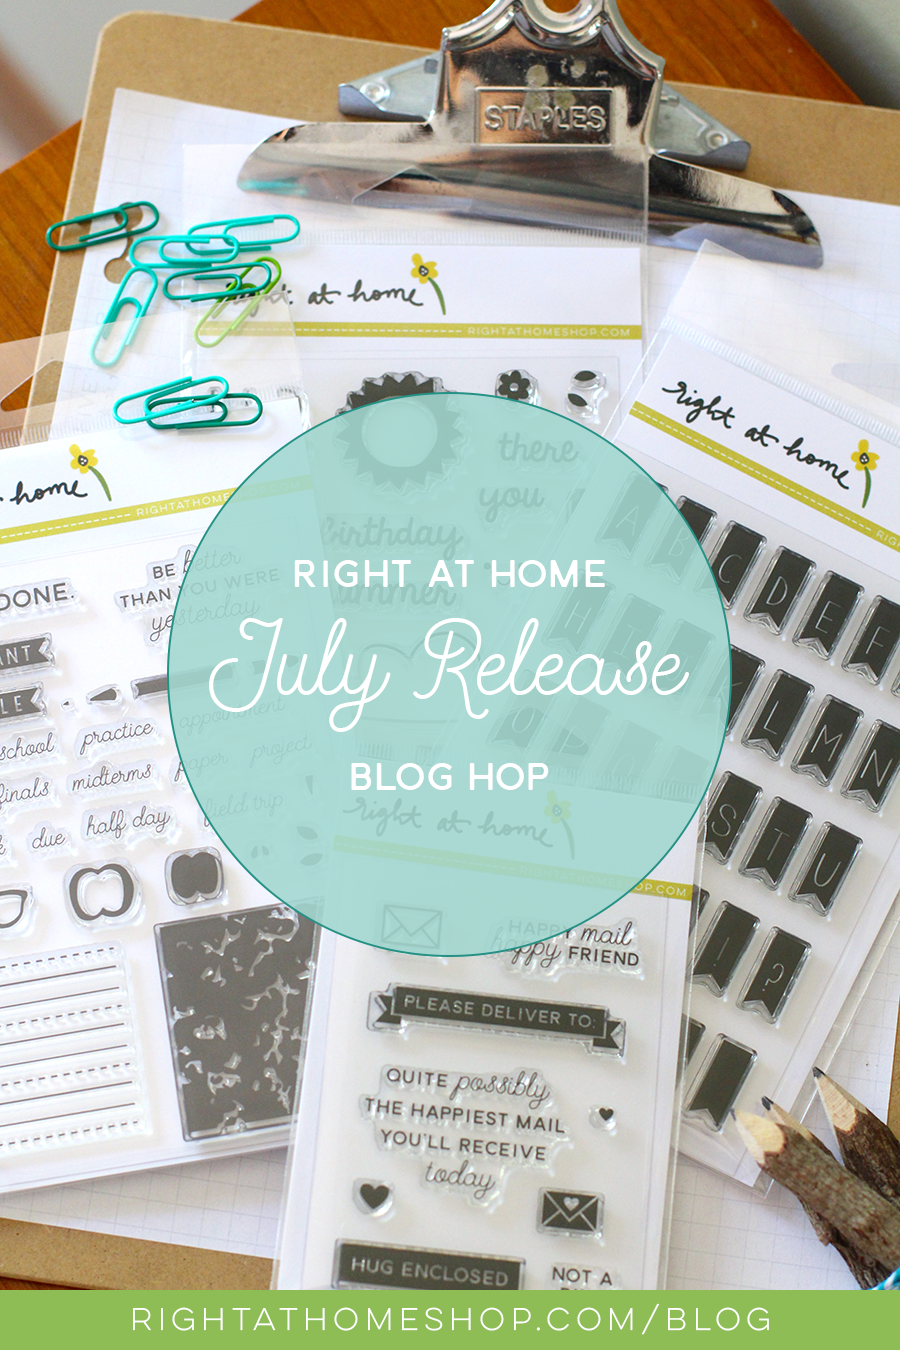 Right at Home Stamps July Release Blog Hop - rightathomeshop.com/blog